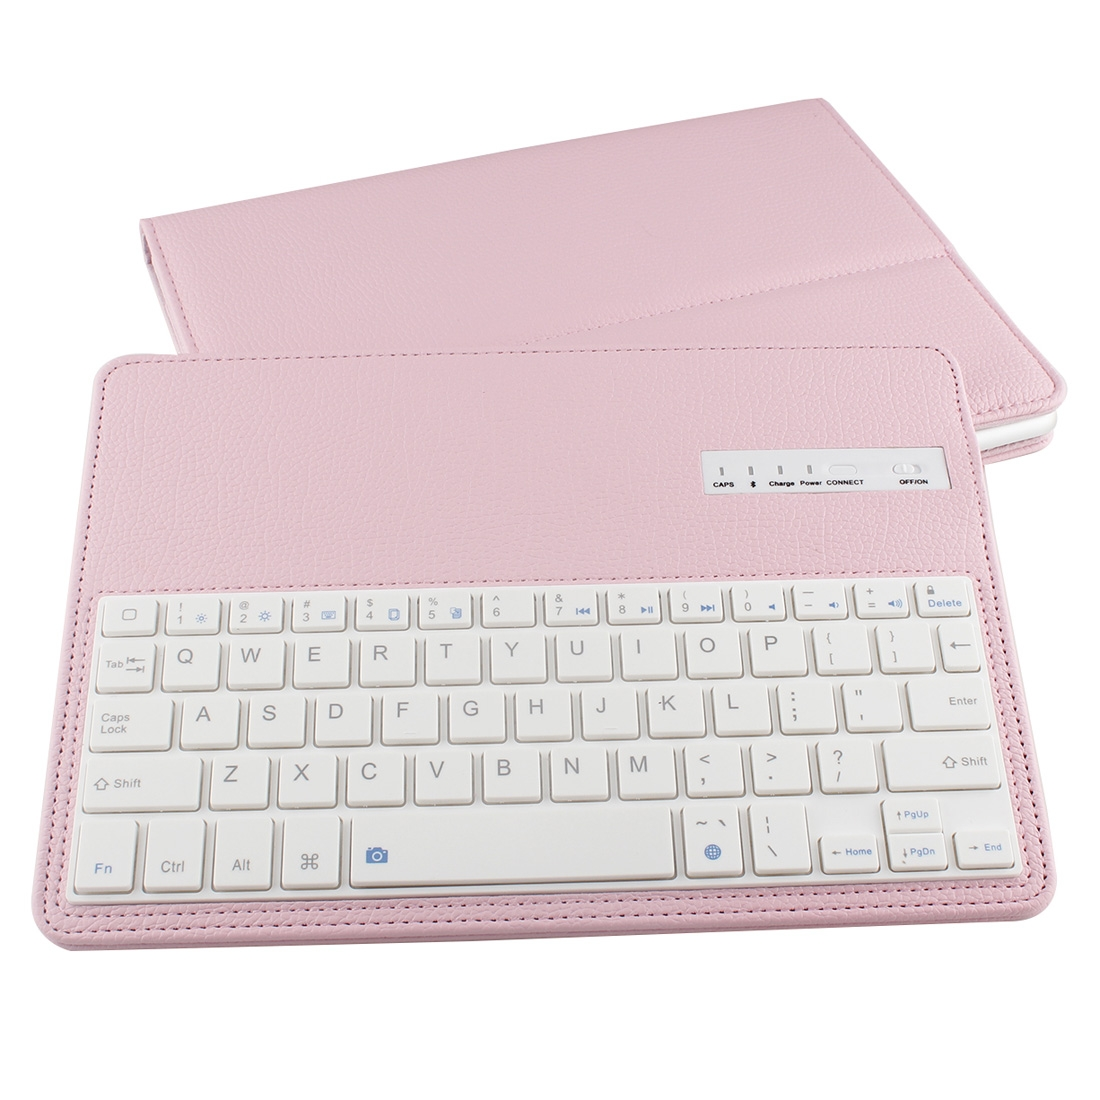 iPad Air 2 Case With Keyboard For iPad Air 2, Leather Case With Bluetooth & Auto/Sleep (Pink)